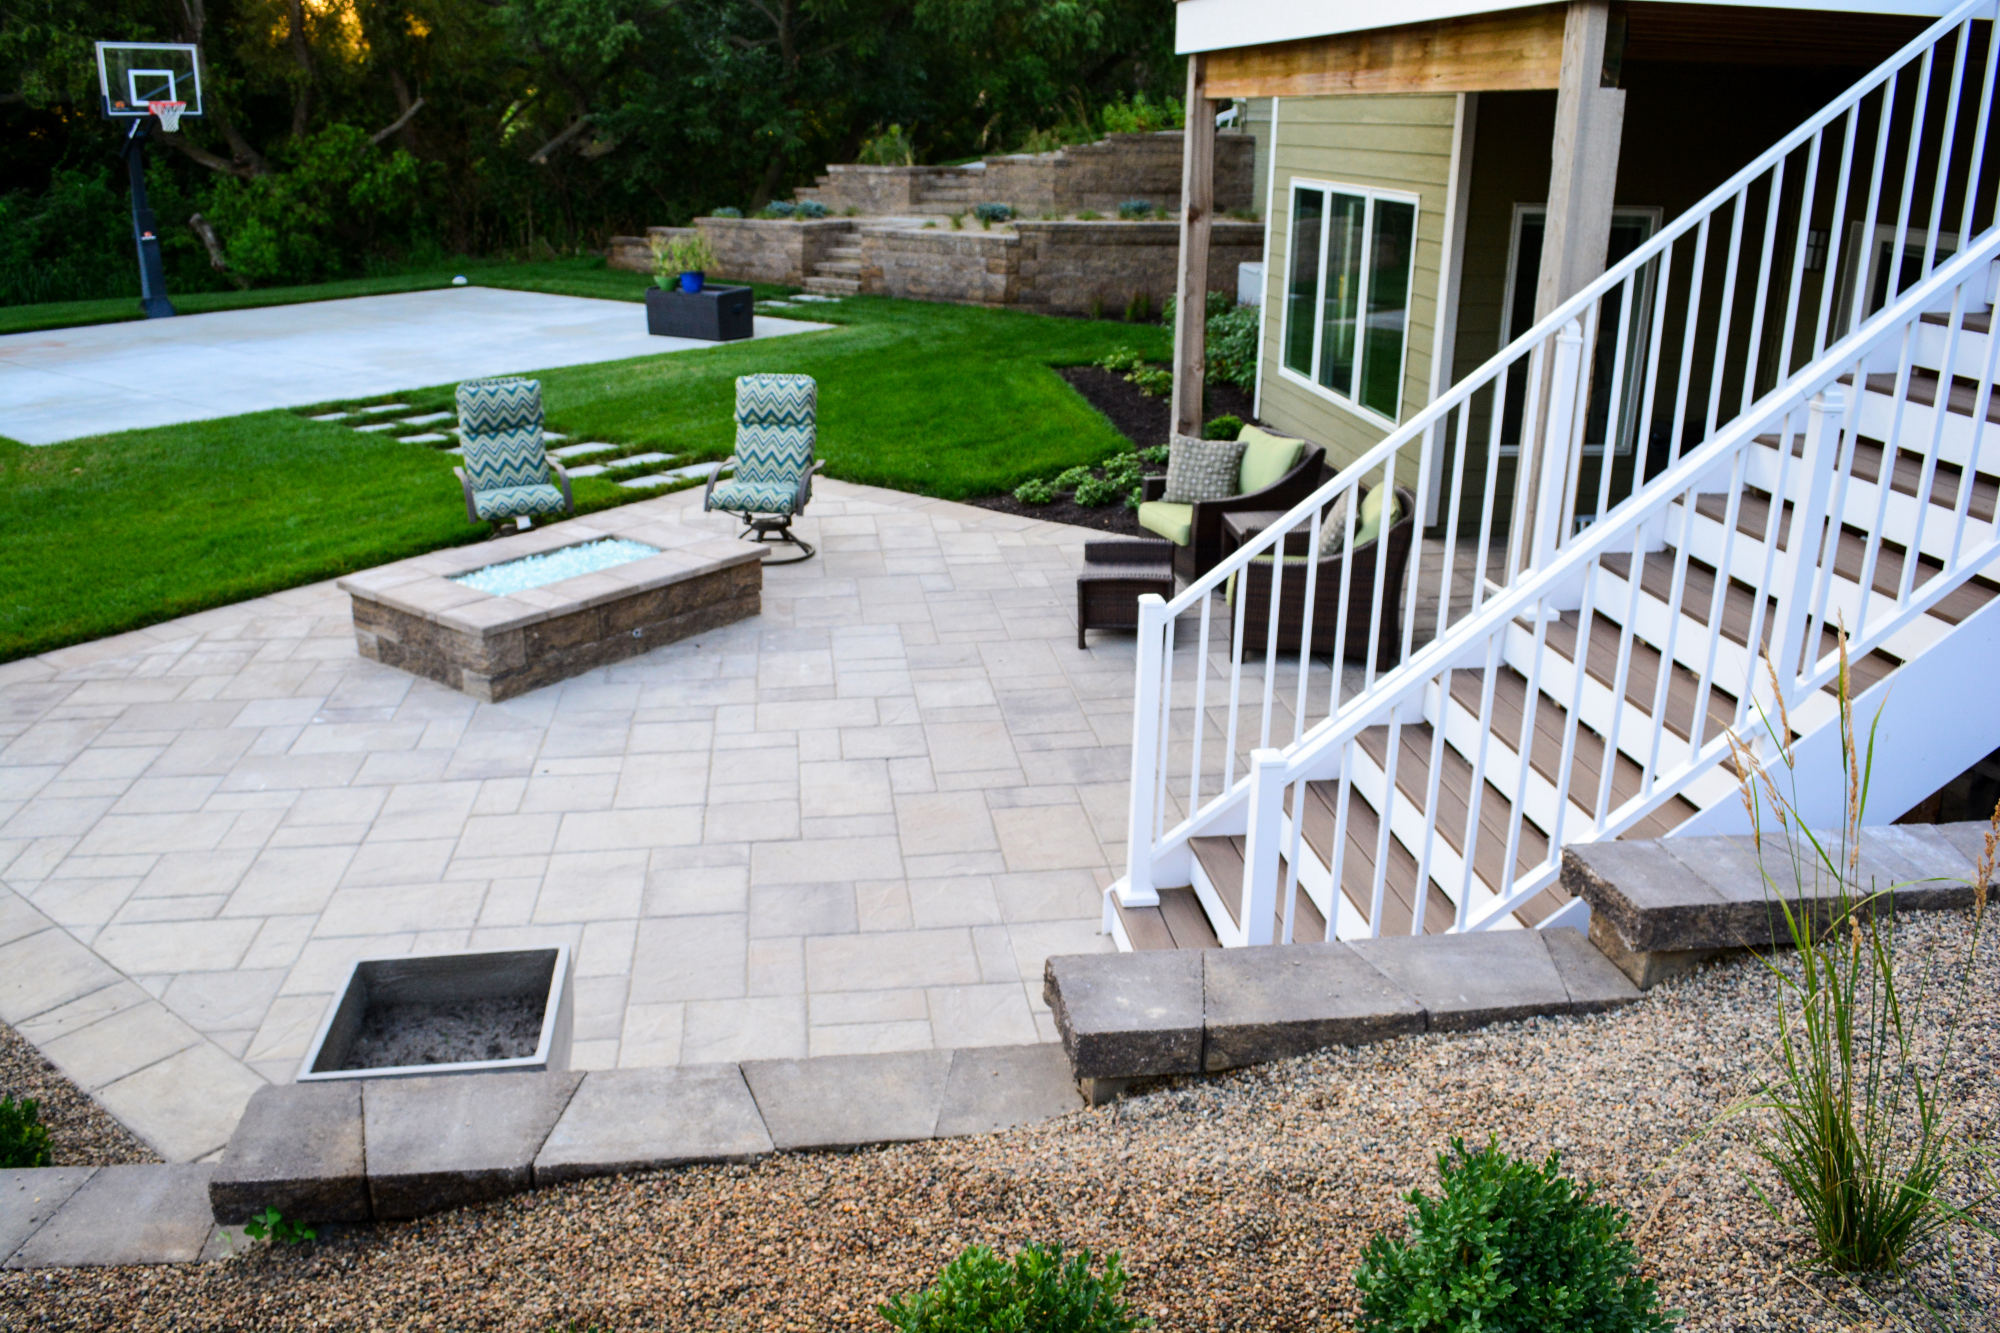 Modern Paver Patio With Custom Fire Feature By Breaking Ground Landscaping.